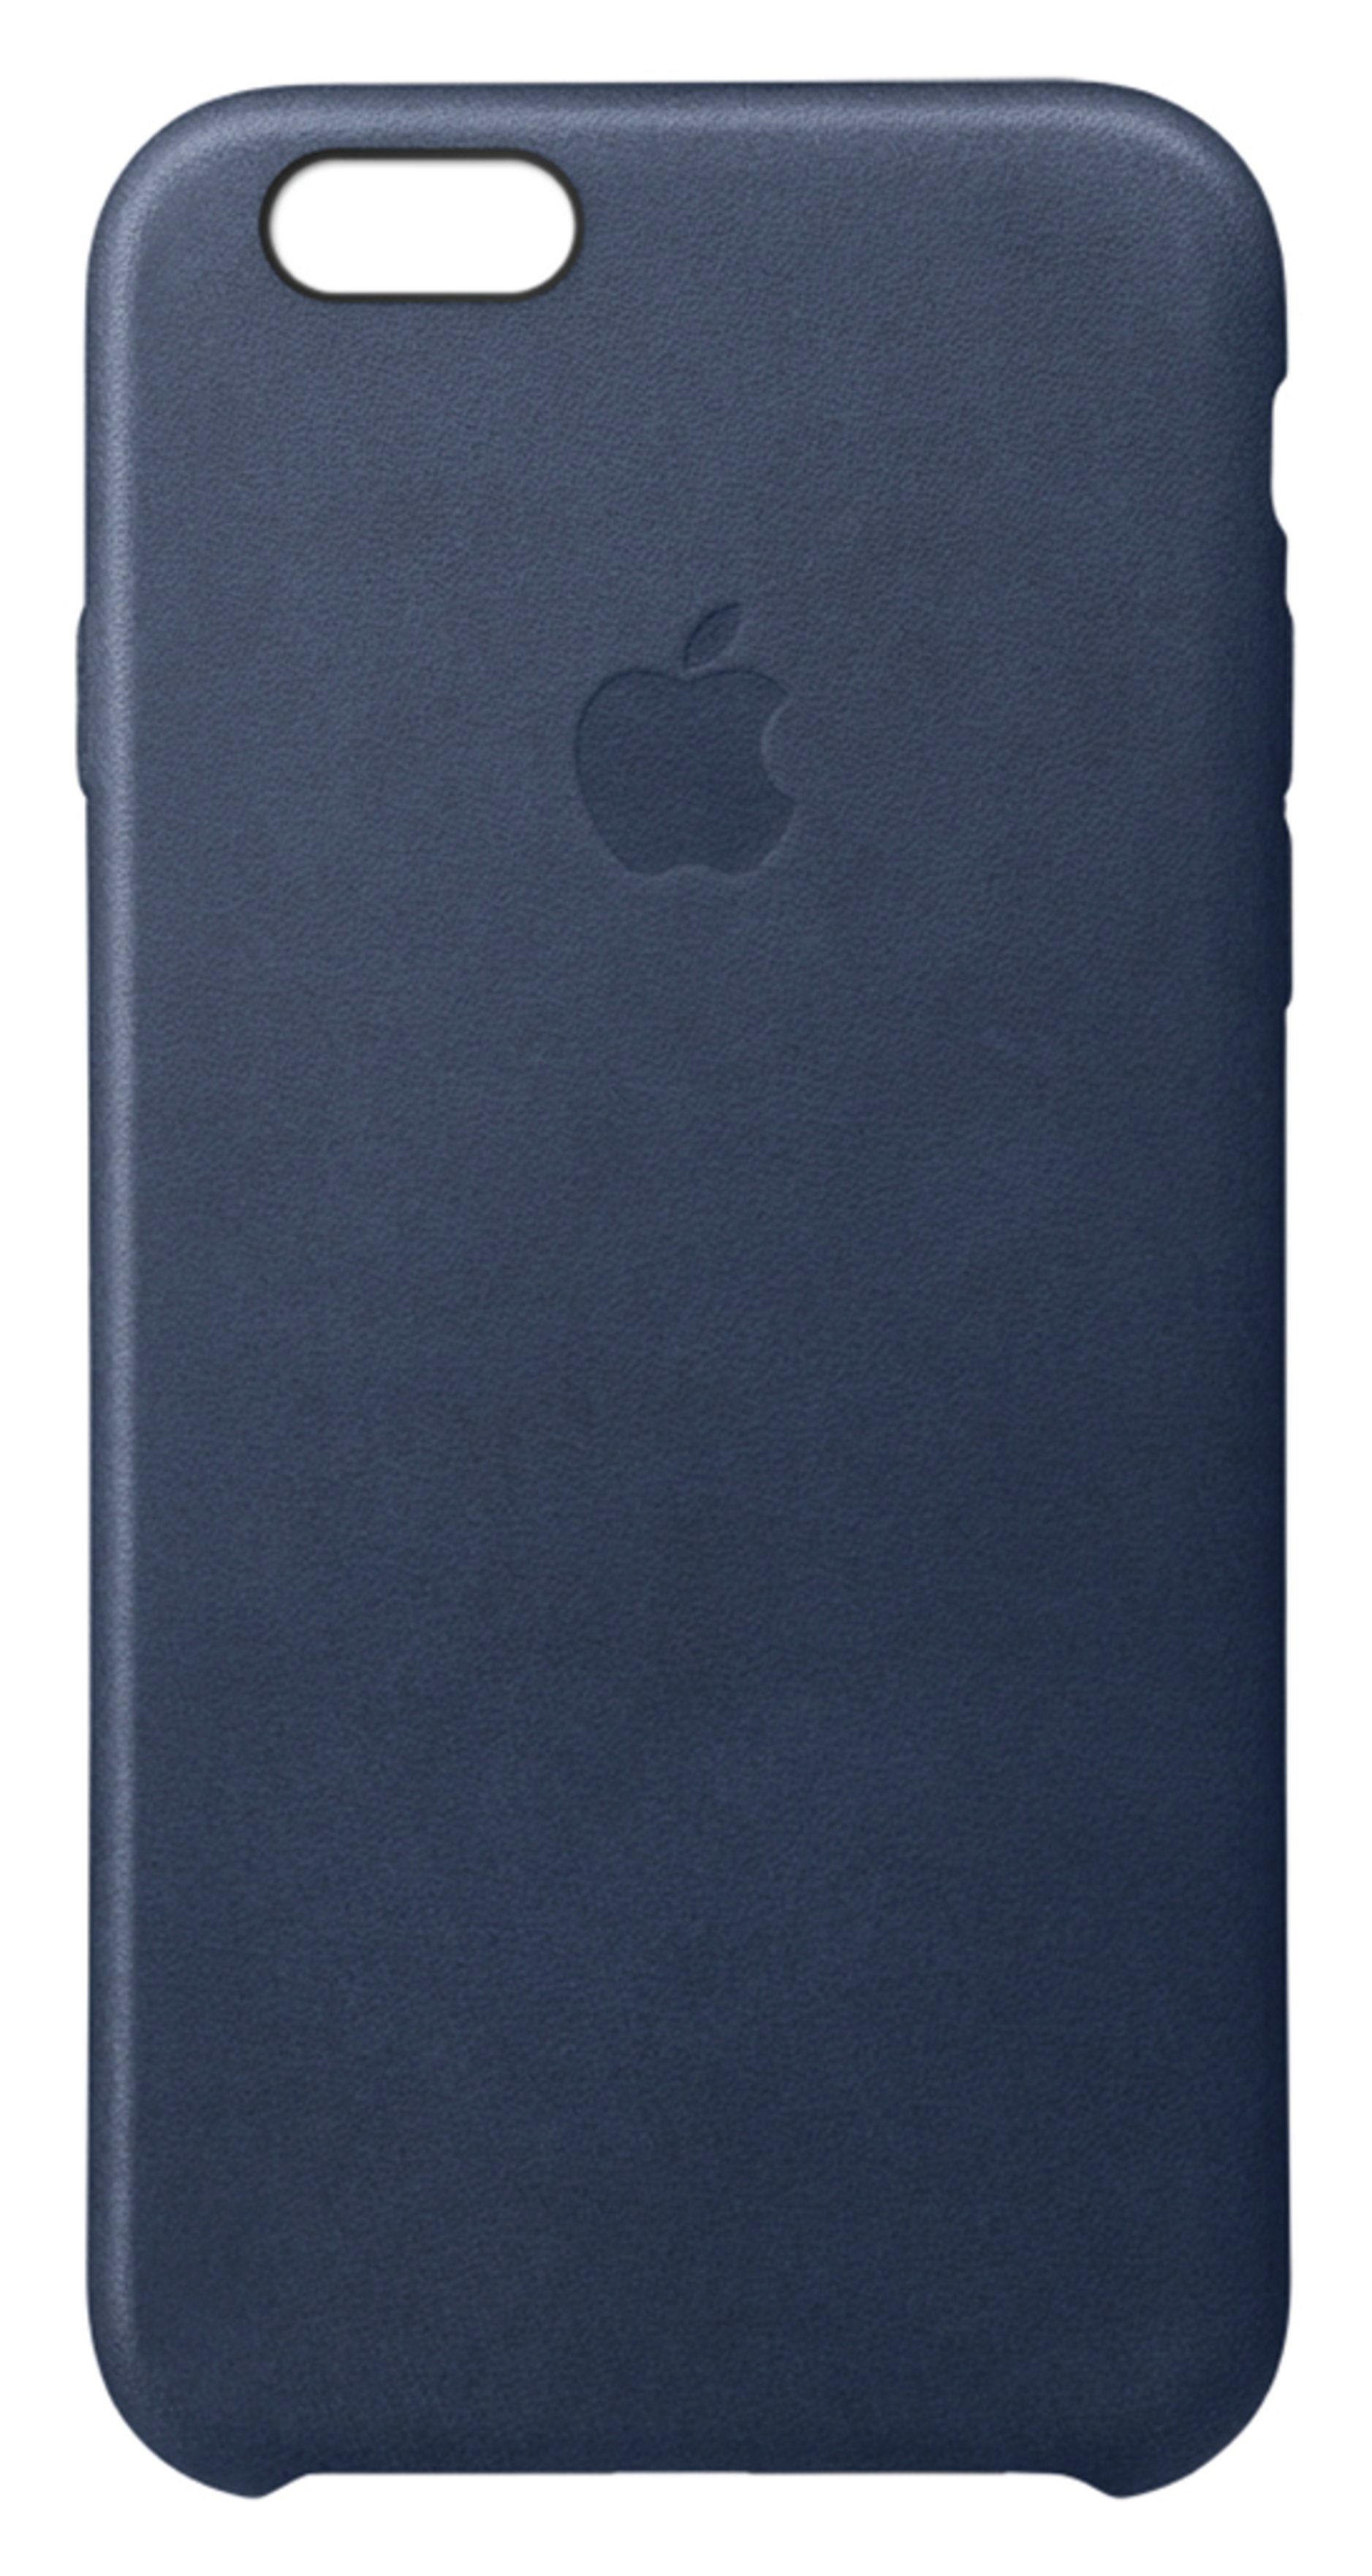 Apple iPhone 6 6S Leather Case Midnight Blue cheapest retail price